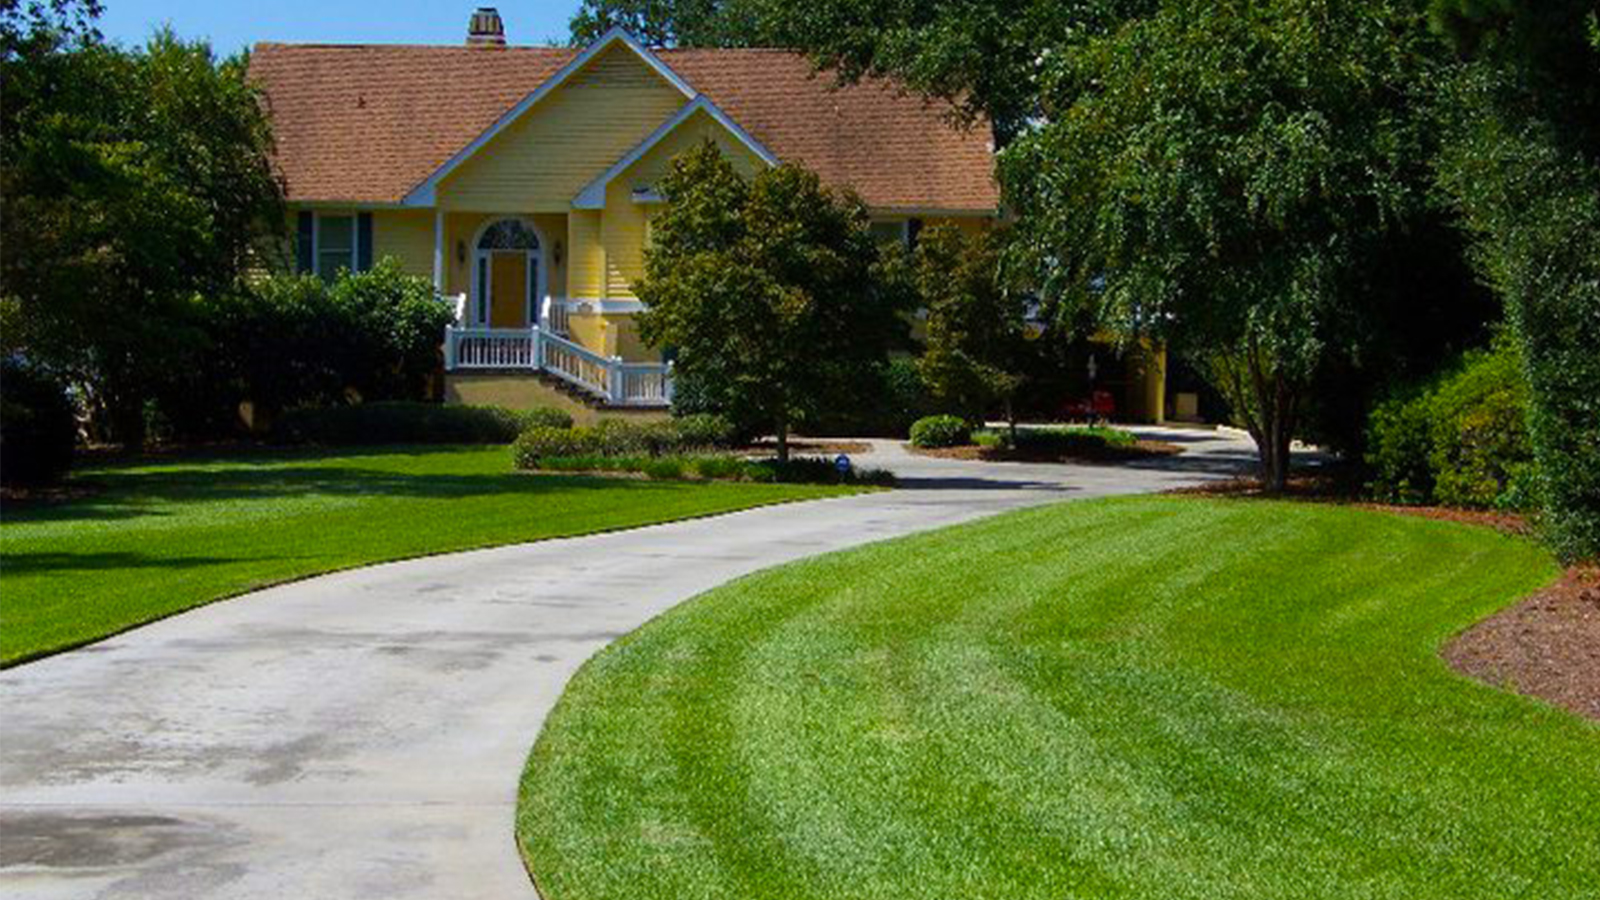 Lawn Maintenance Services in South Carolina 2